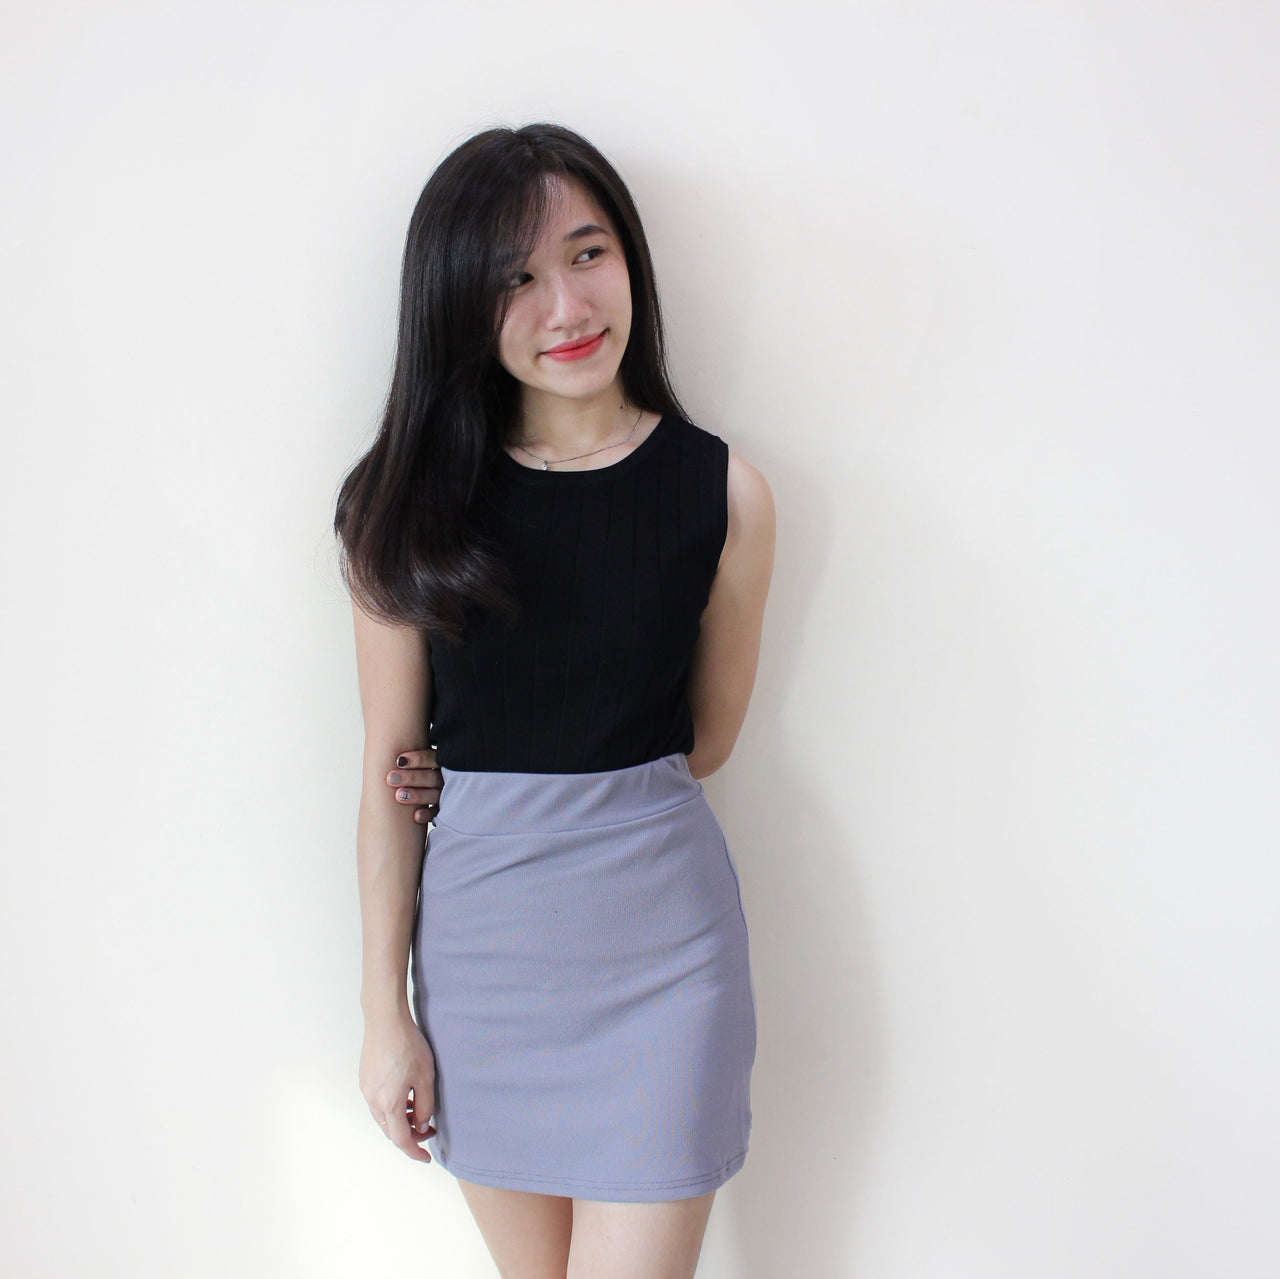 Rib Sleeveless Top - LovelyMadness Clothing Online Fashion Malaysia